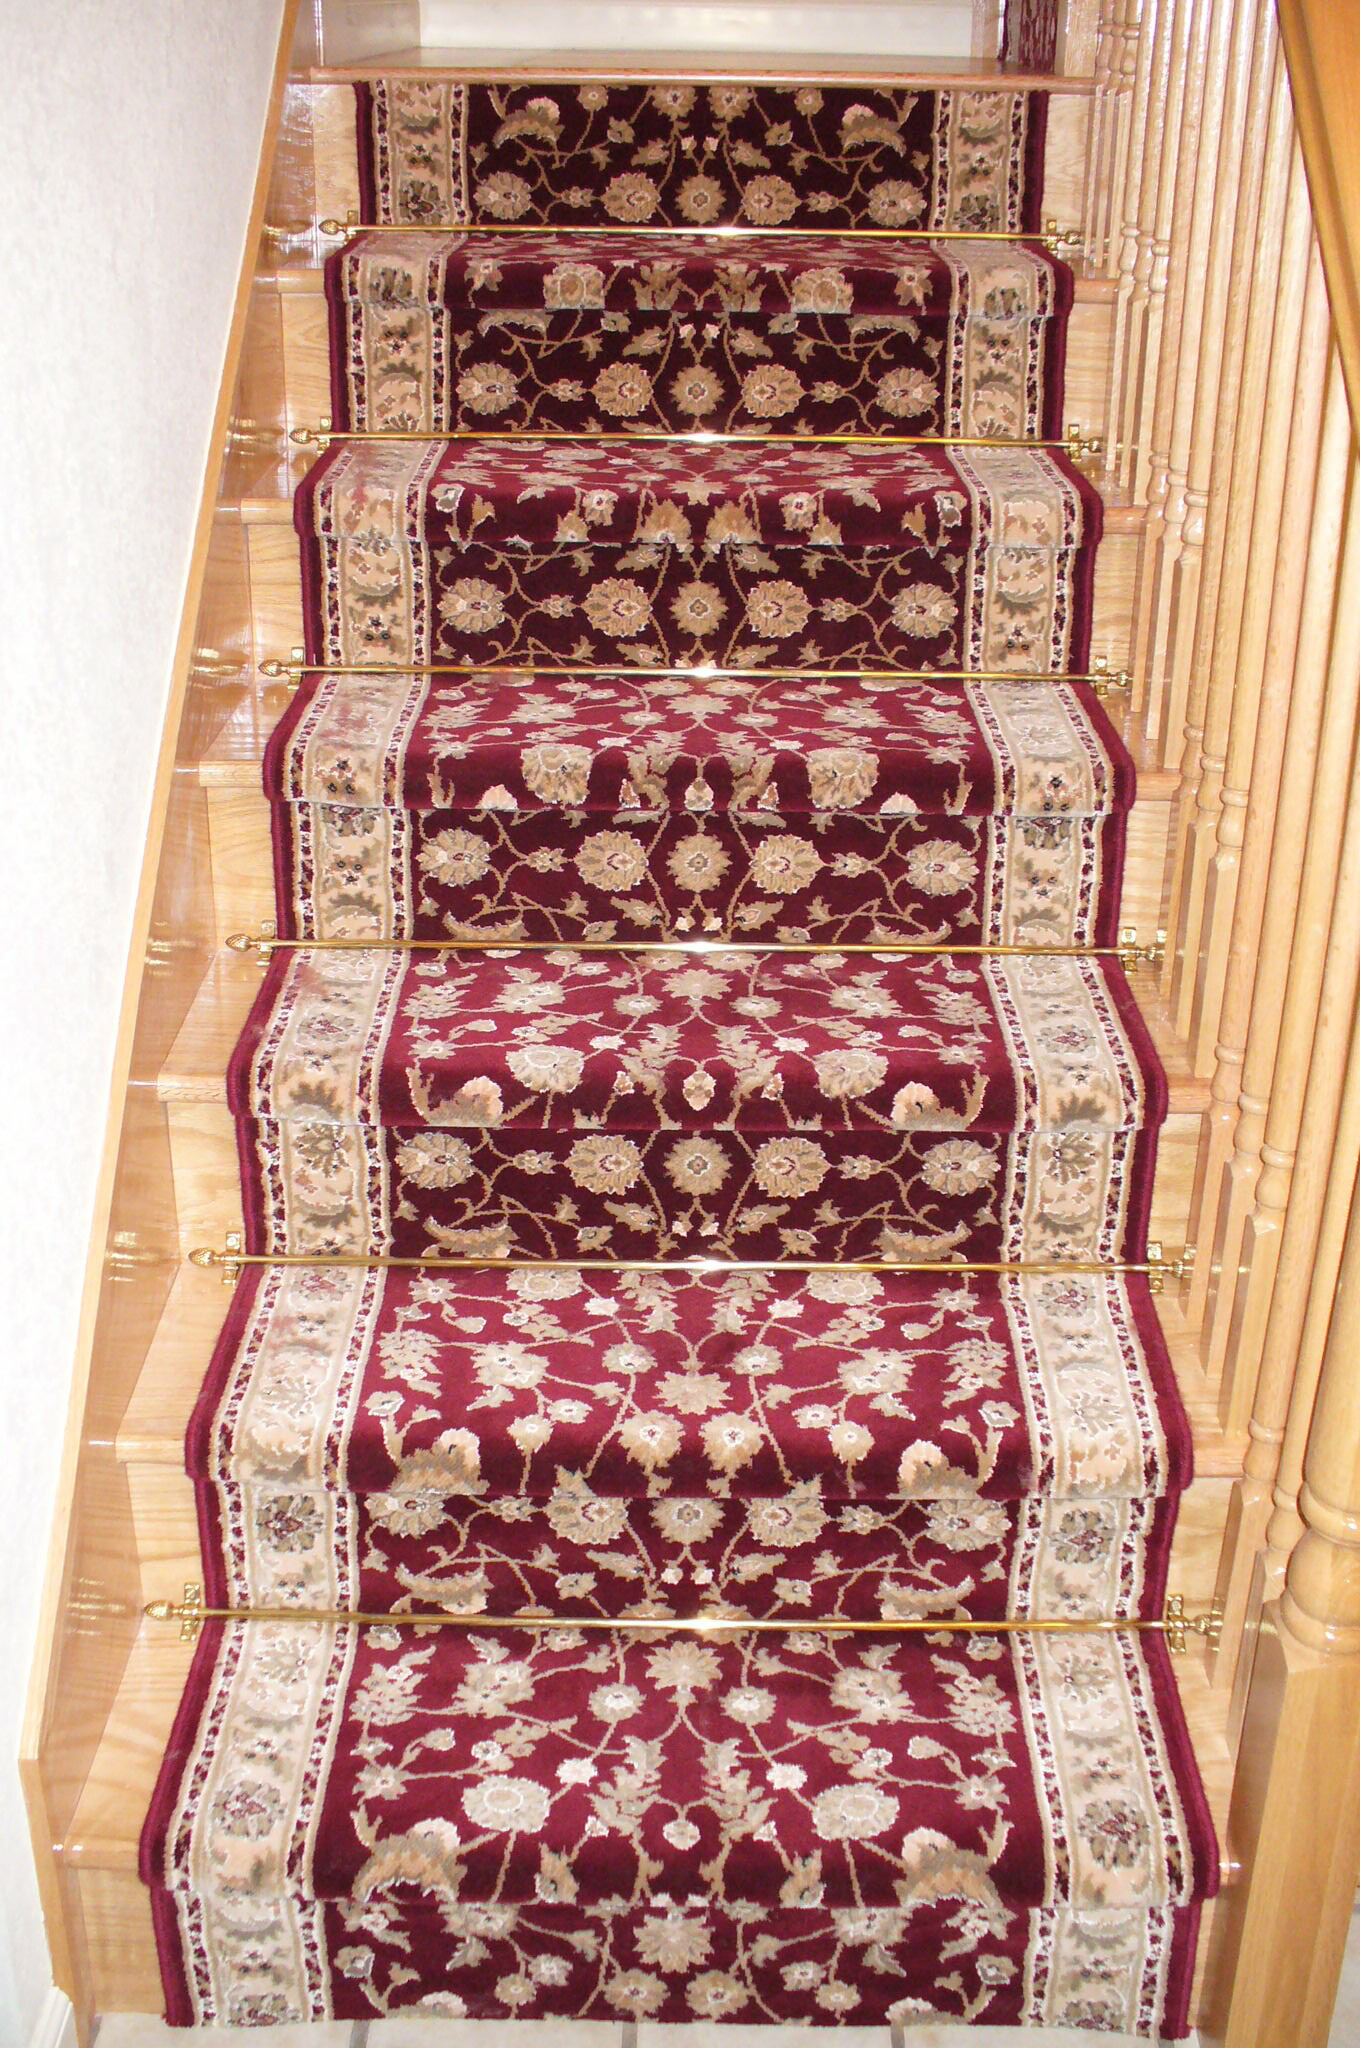 Carpeting on staircase